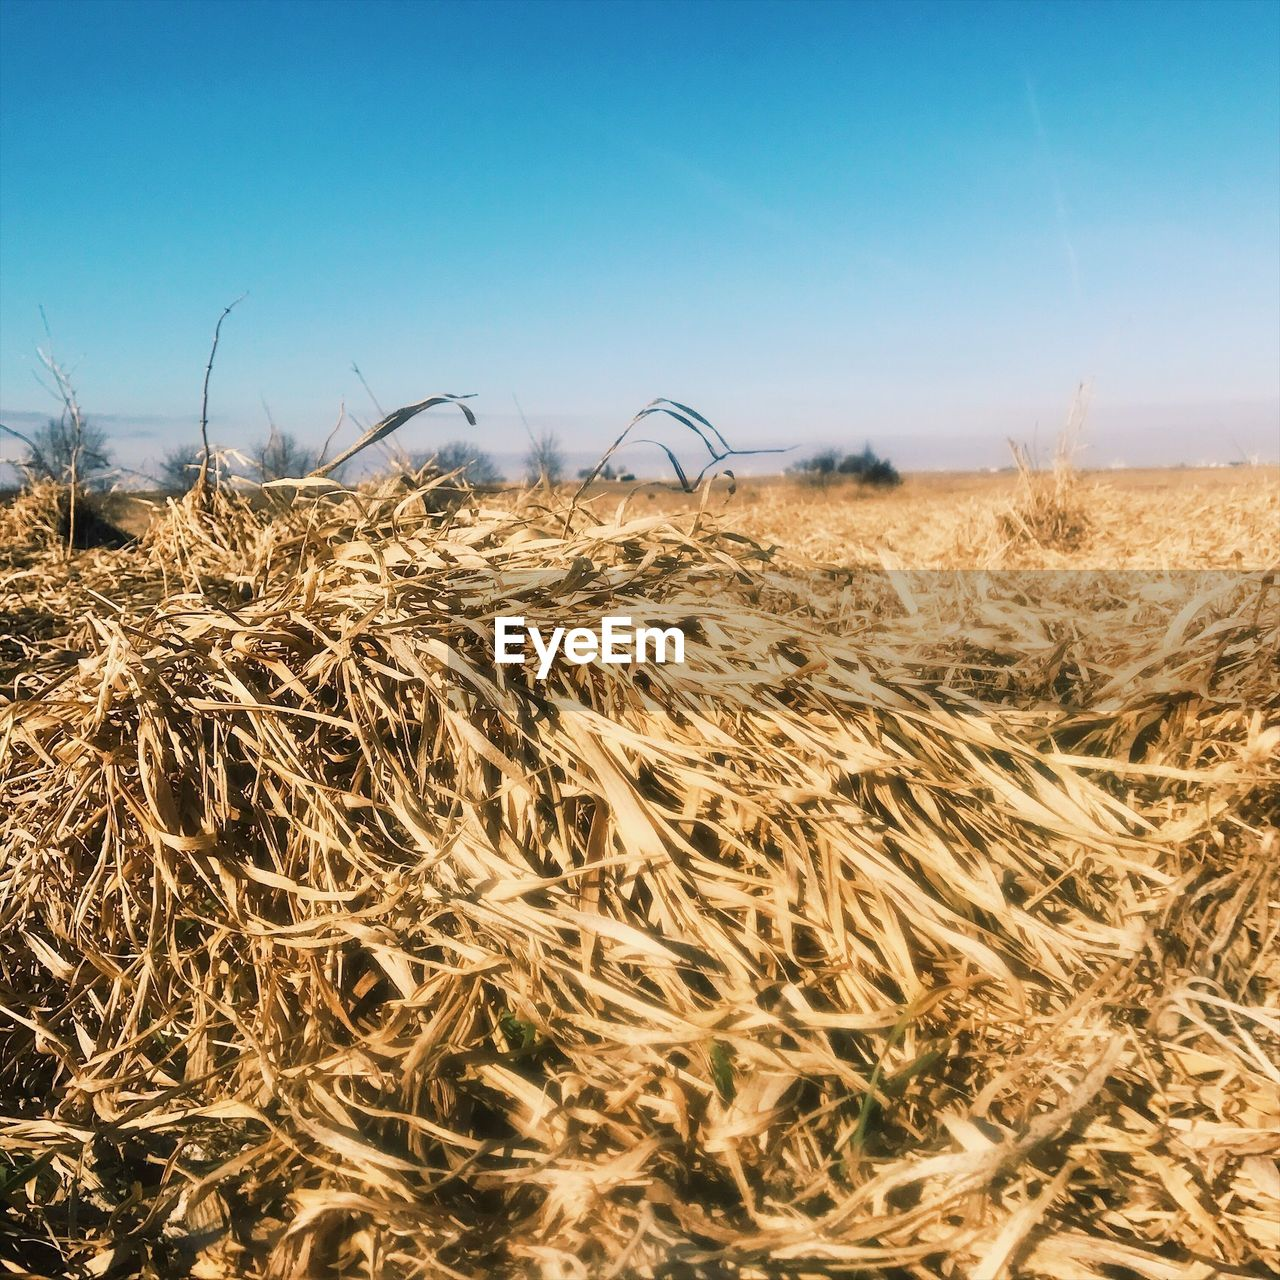 sky, landscape, land, field, tranquility, nature, agriculture, environment, tranquil scene, plant, clear sky, rural scene, scenics - nature, crop, beauty in nature, day, no people, farm, growth, sunlight, outdoors, arid climate